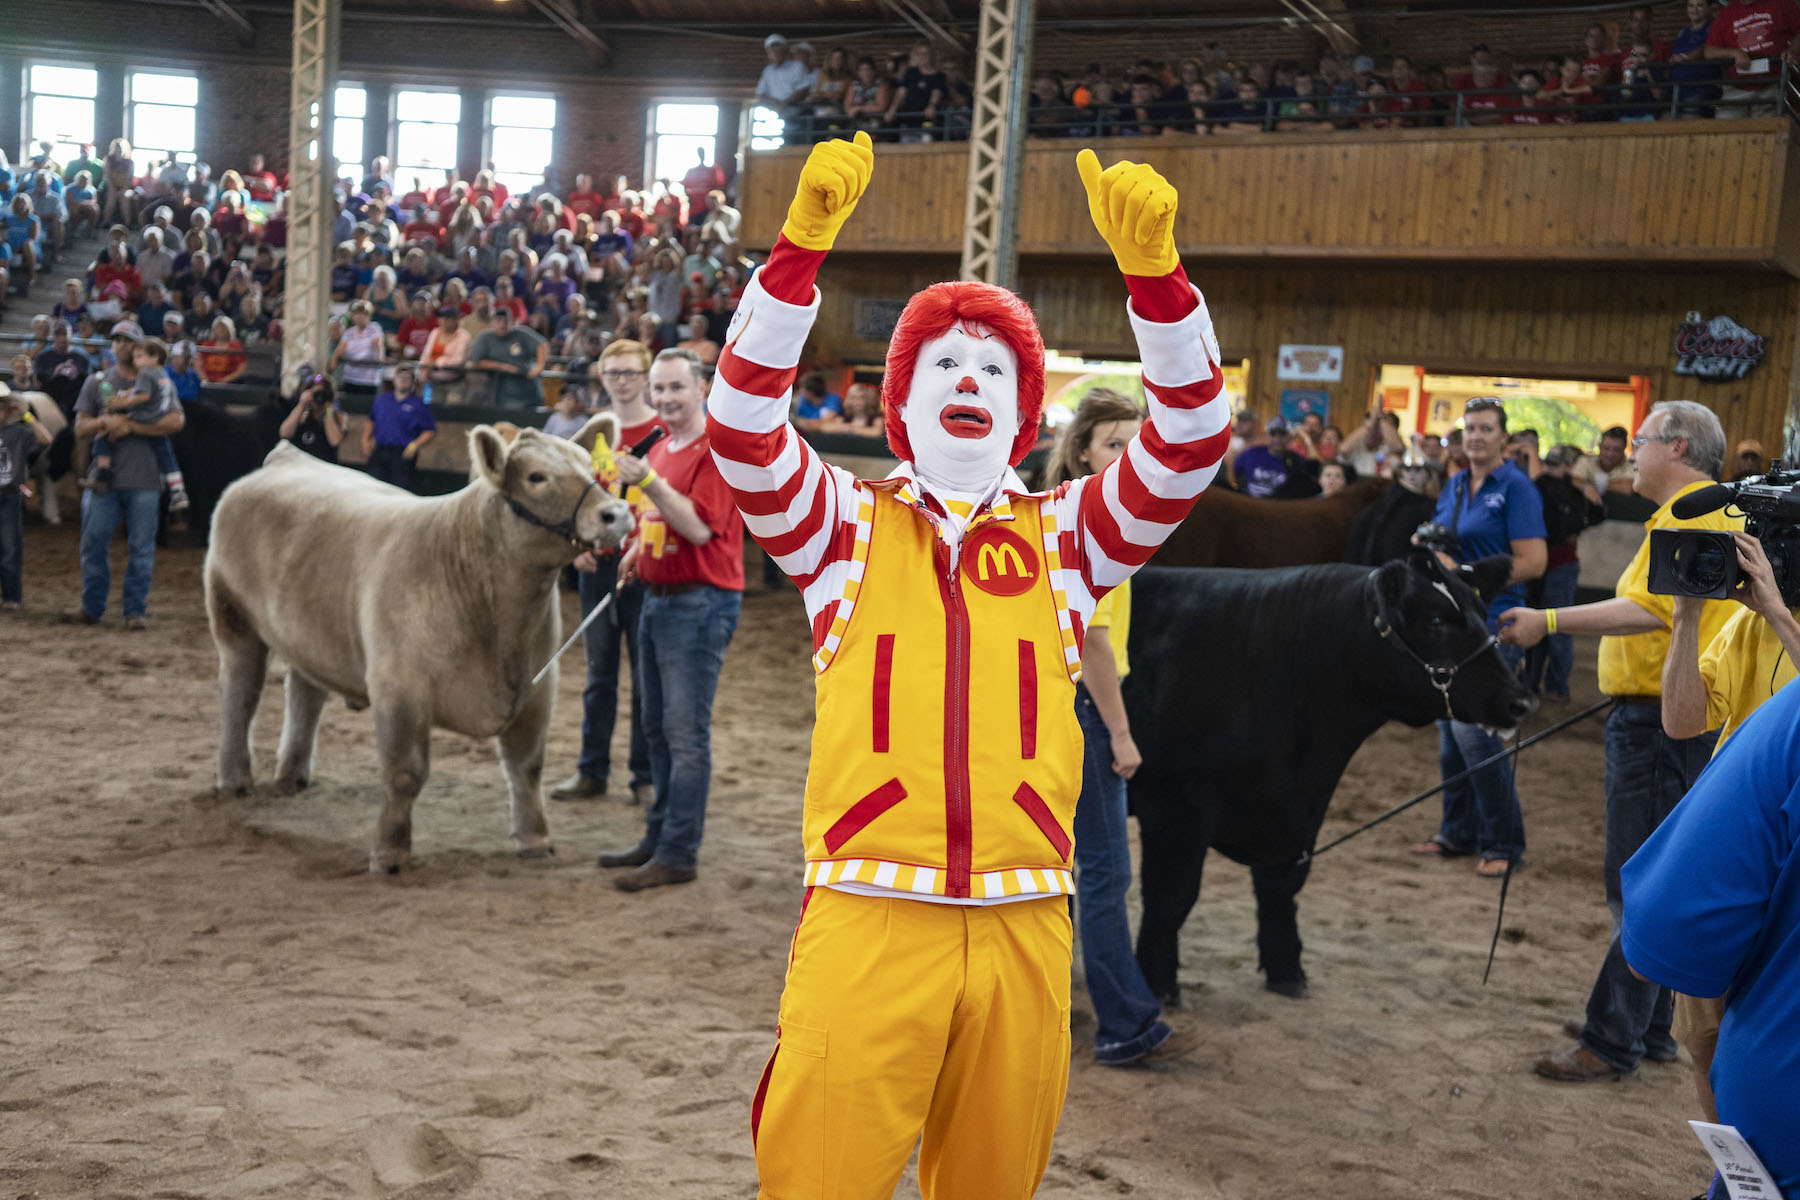 A man dressed as Ronald McDonald gives a thumps up to to audience members during The Governor's Charity Steer Show at The Iowa State Fair in Des Moines, Iowa on Saturday, August 11, 2018.